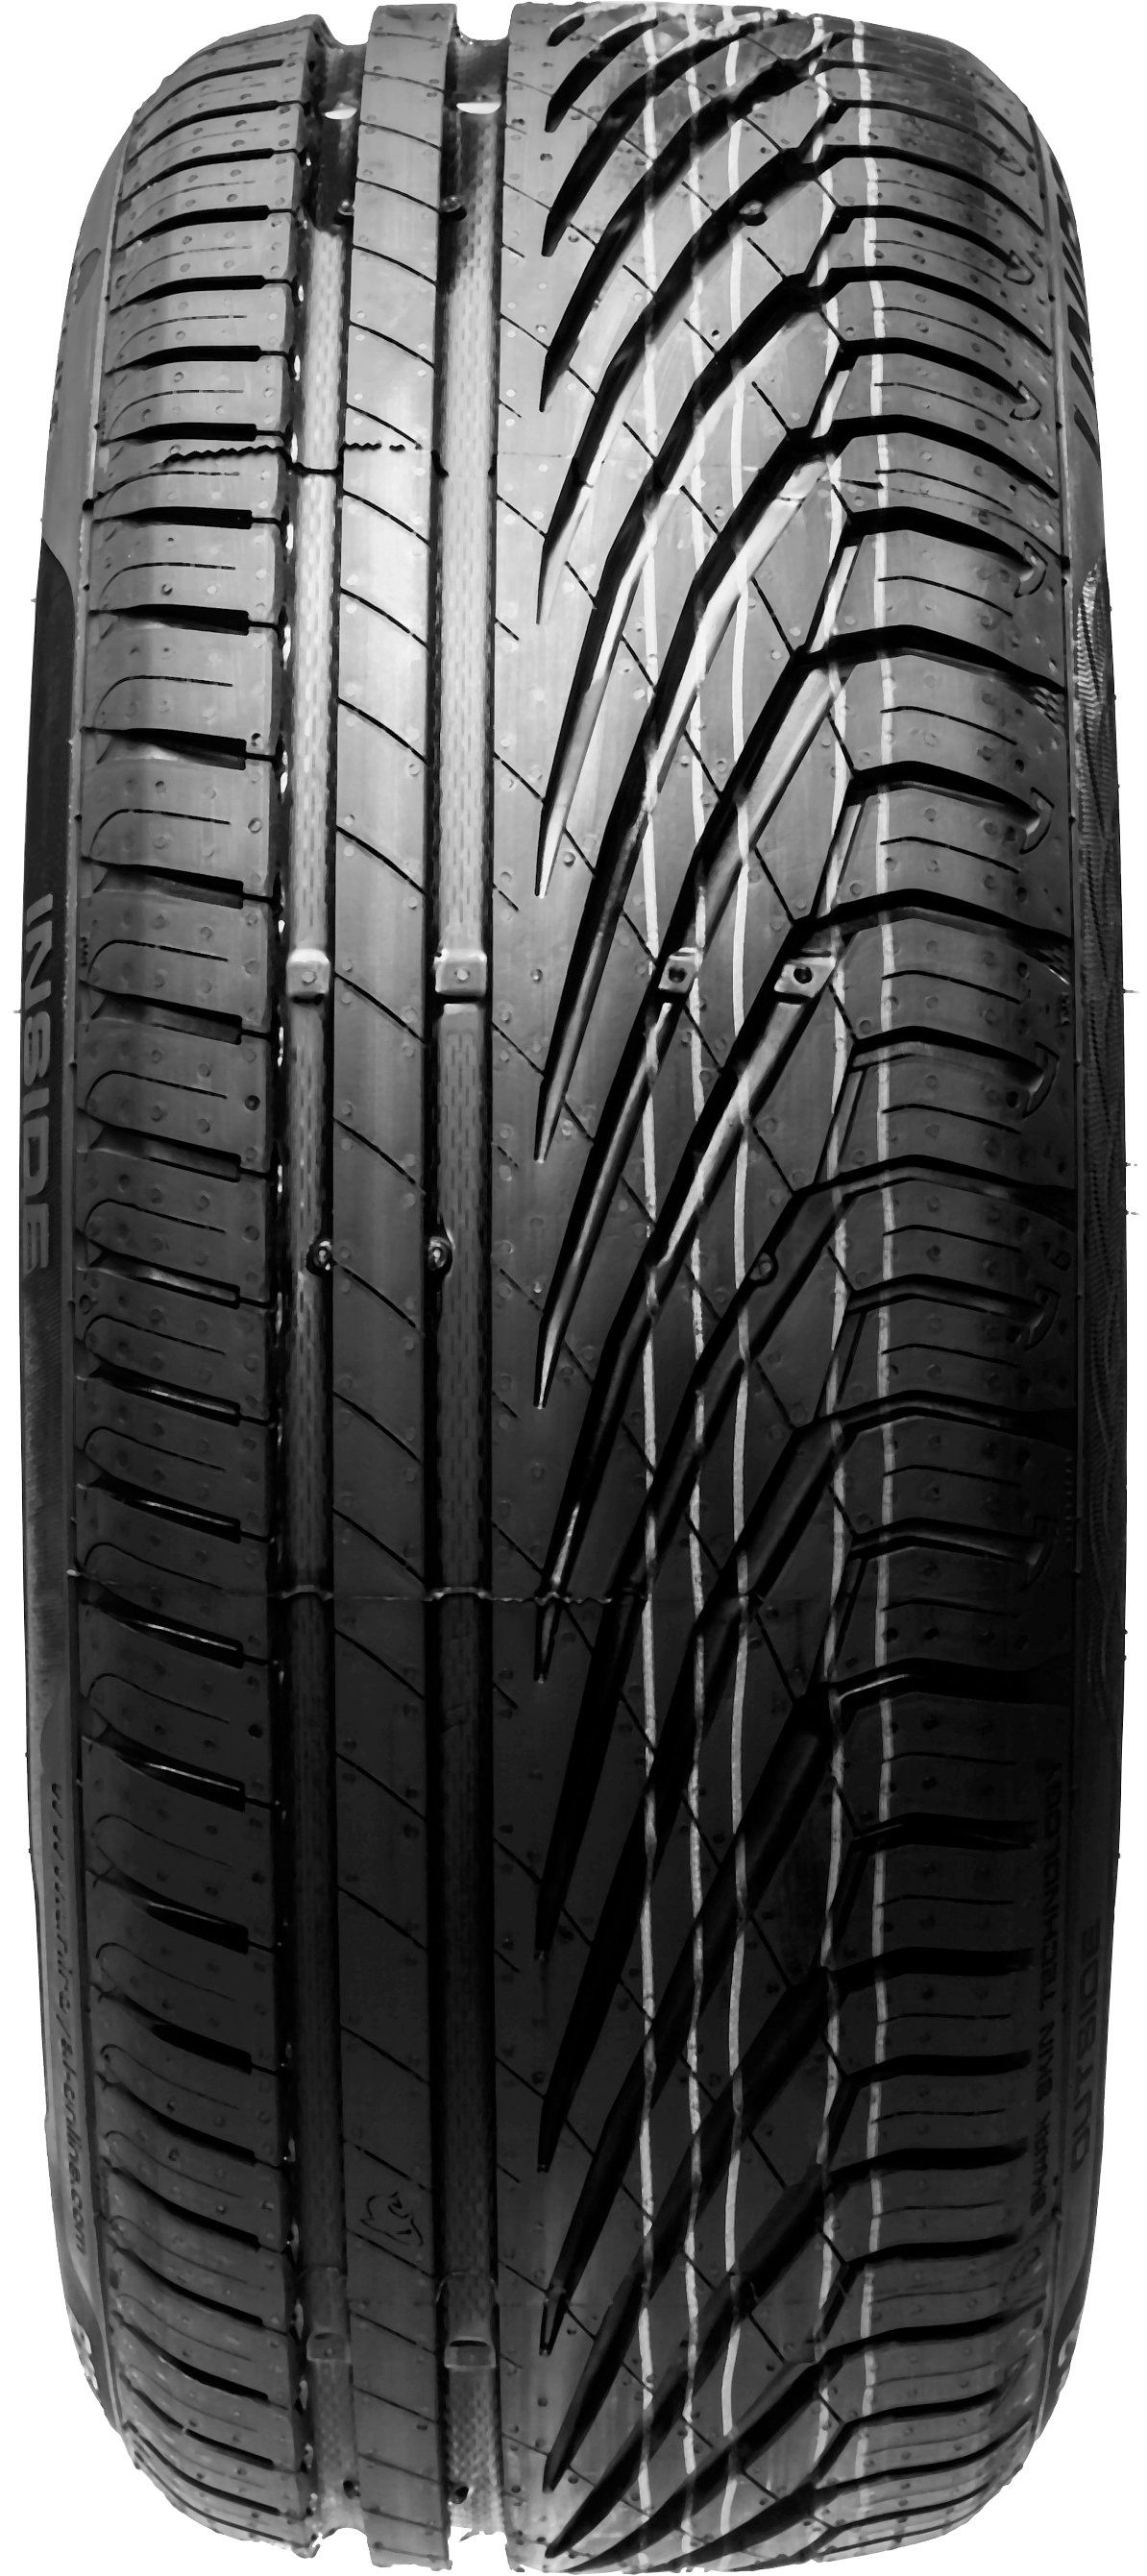 UNIROYAL Sommerreifen »RainSport 3«, 245/45 R18 96Y